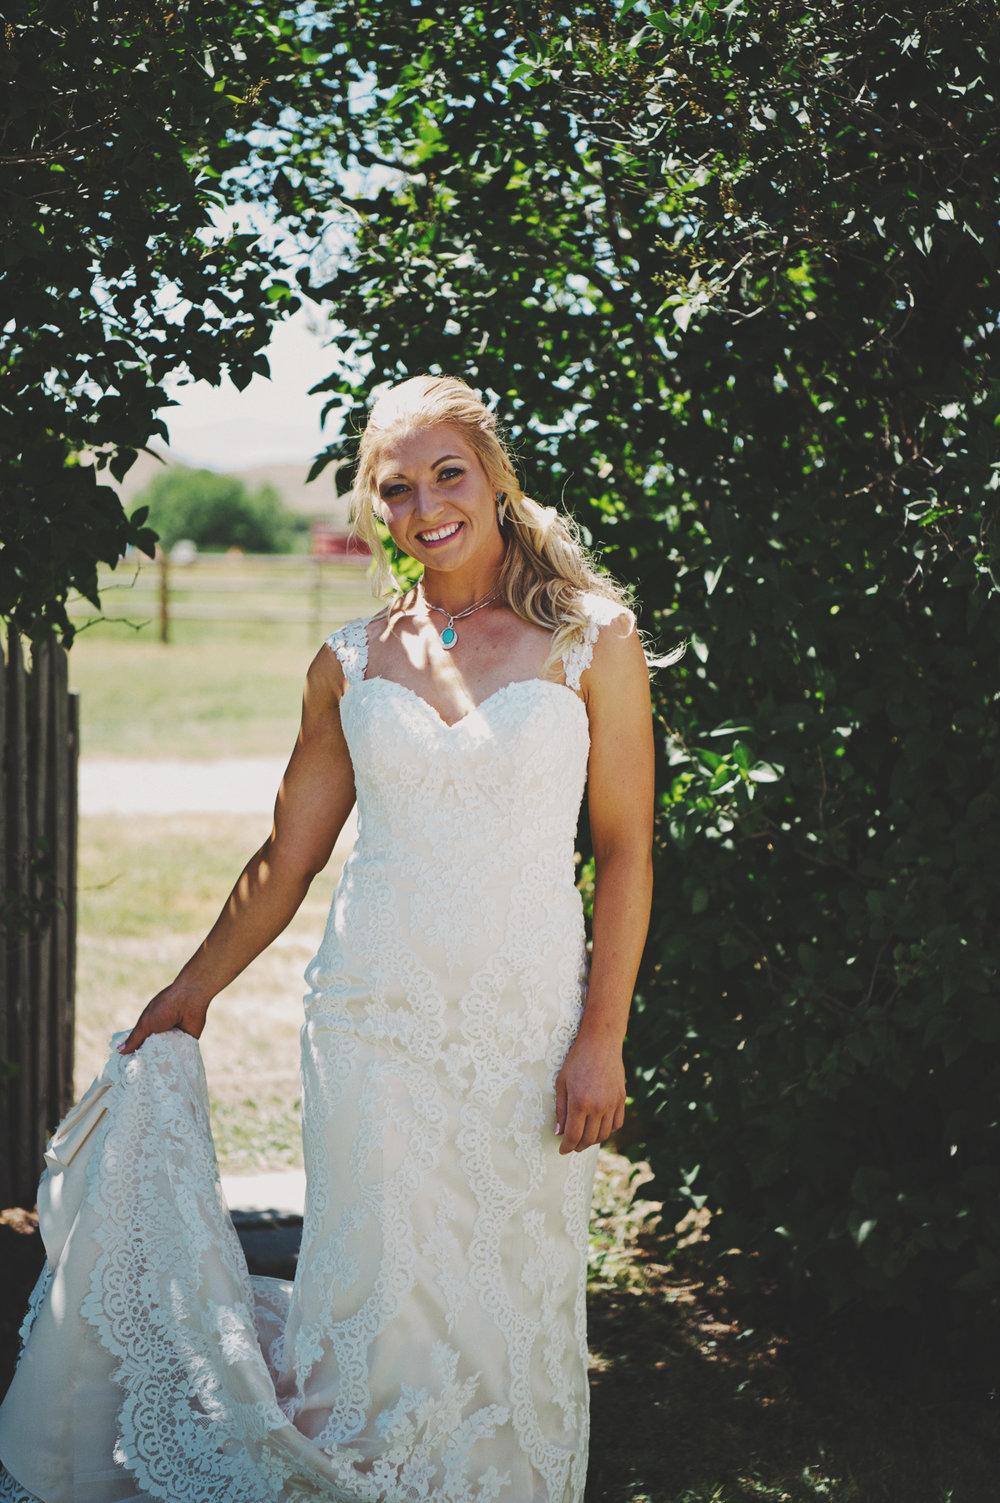 Erica Lind + Jeff Heim Wedding_Rustic Wedding_Montana Wedding_Kelsey Lane Photography-3688 copy.jpg